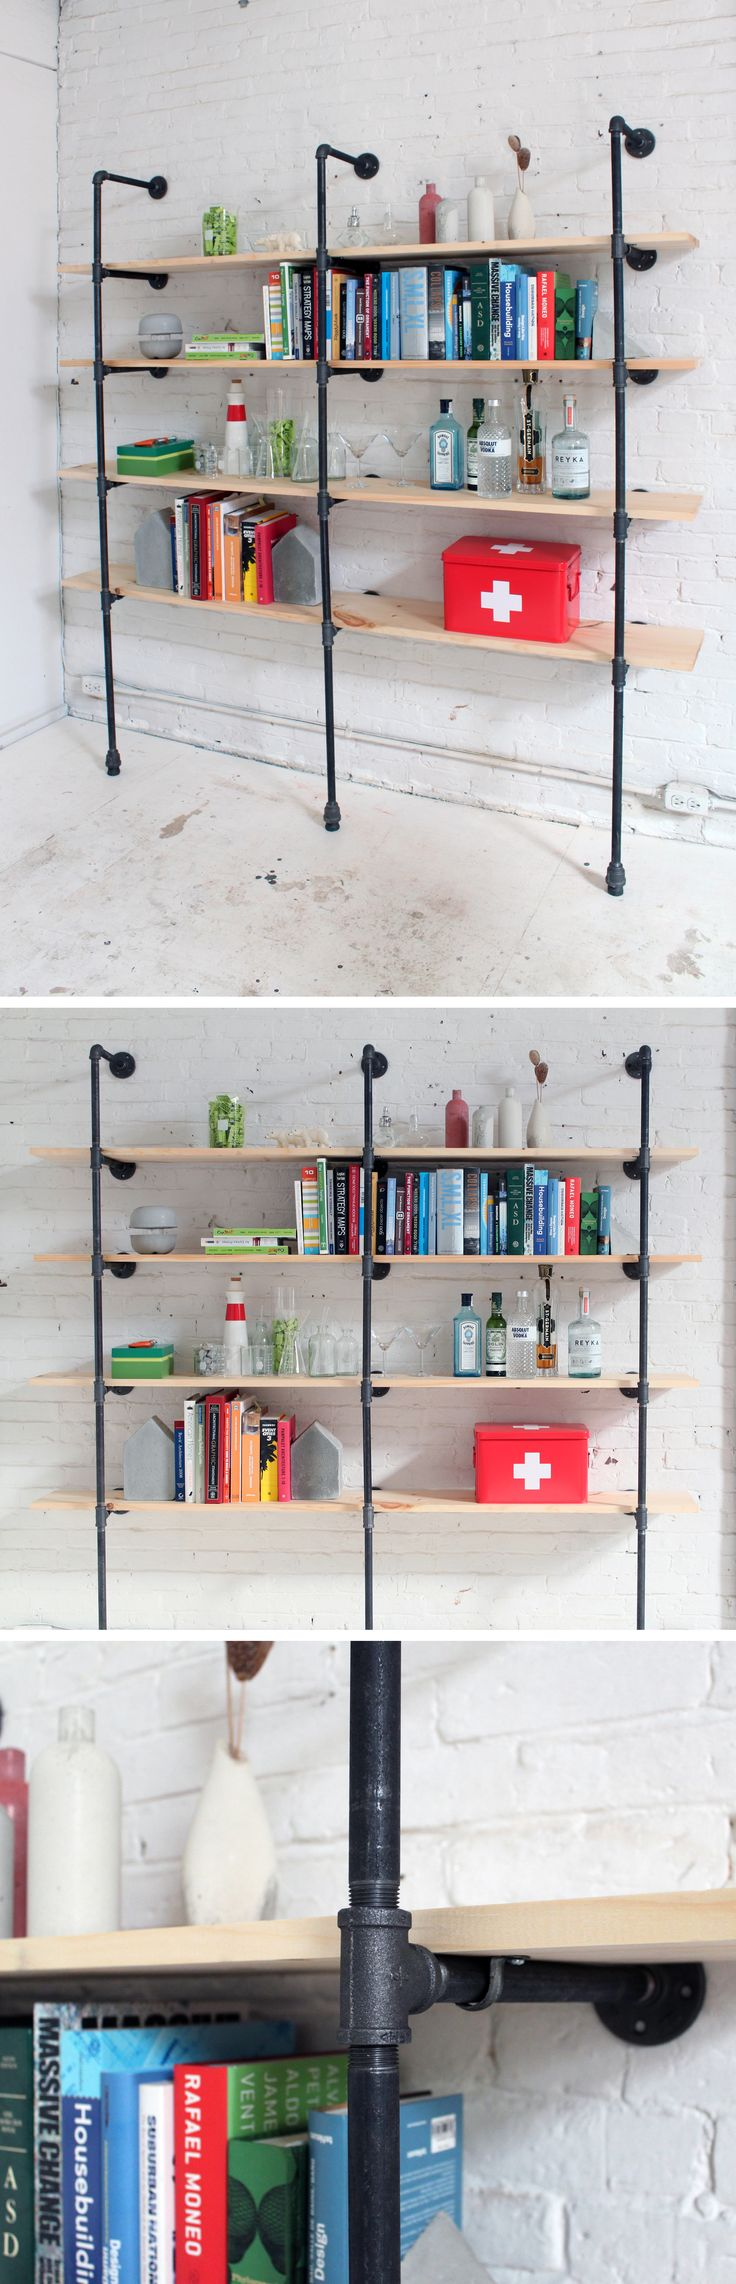 Shelves made out of iron pipe fittings are not cheap but are a great investment since you can adjust the iron pipe fittings and reshape the shelves to better fit whatever space you need shelving in. Check out the site for the full instructions and material list! http://www.homemade-modern.com/ep47-pipe-shelves/